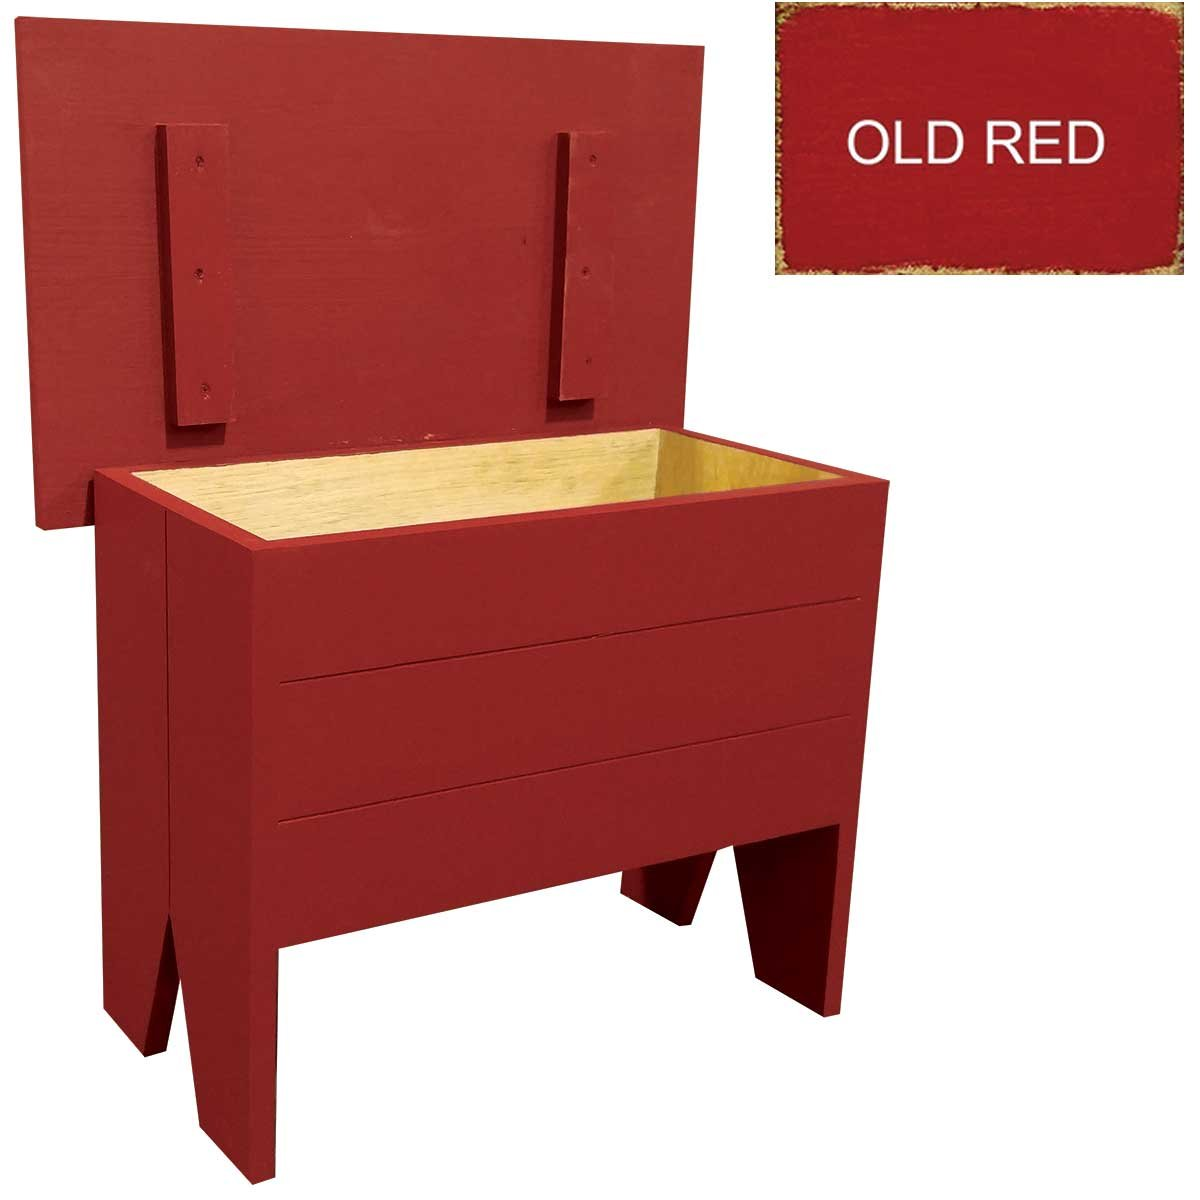 Peachy Sawdust City Storage Bench 2 Long Old Red Andrewgaddart Wooden Chair Designs For Living Room Andrewgaddartcom